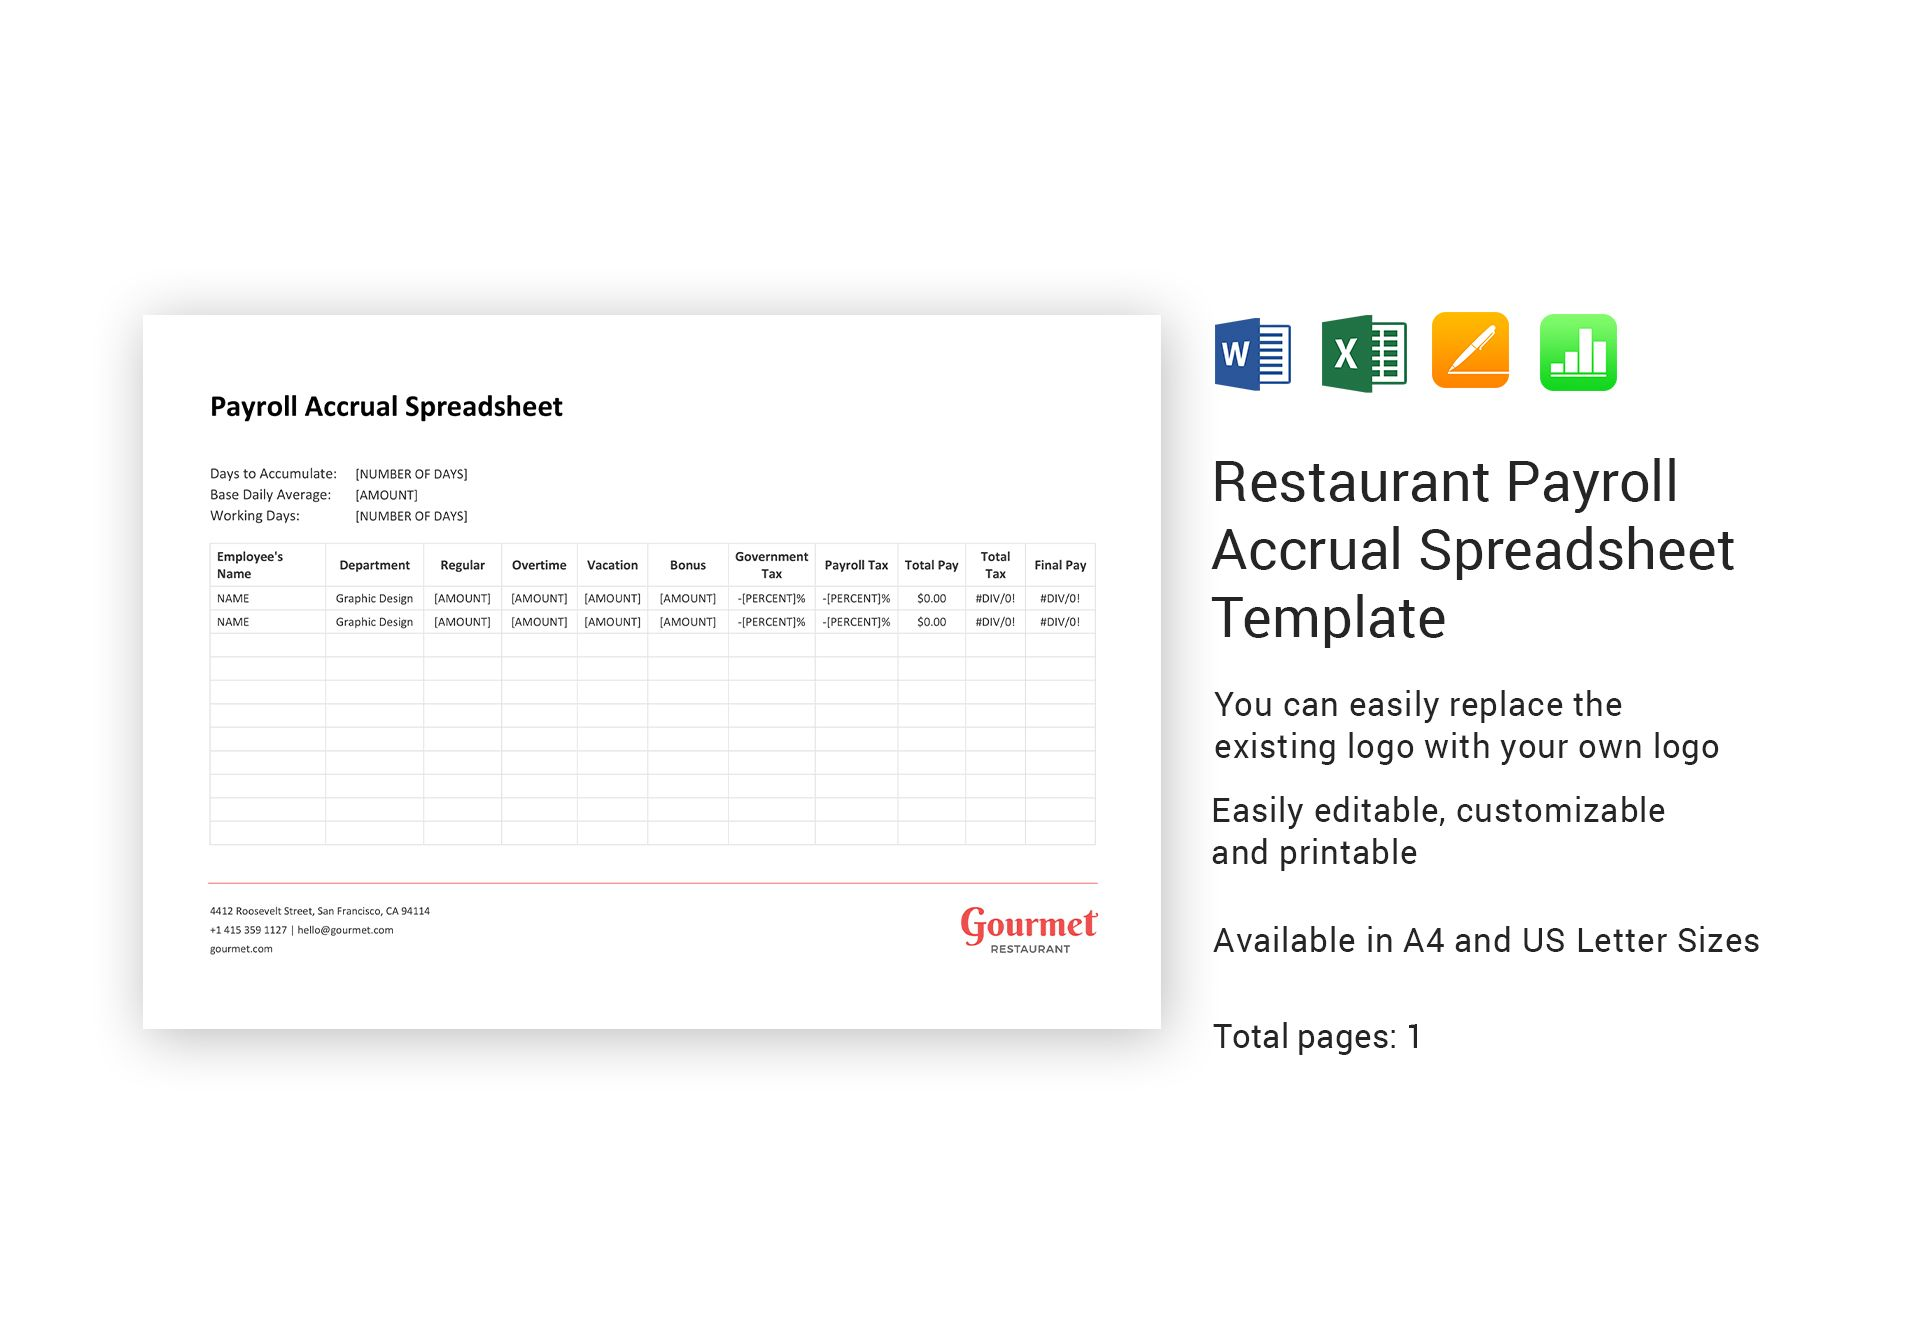 Restaurant Payroll Accrual Spreadsheet Template In Word